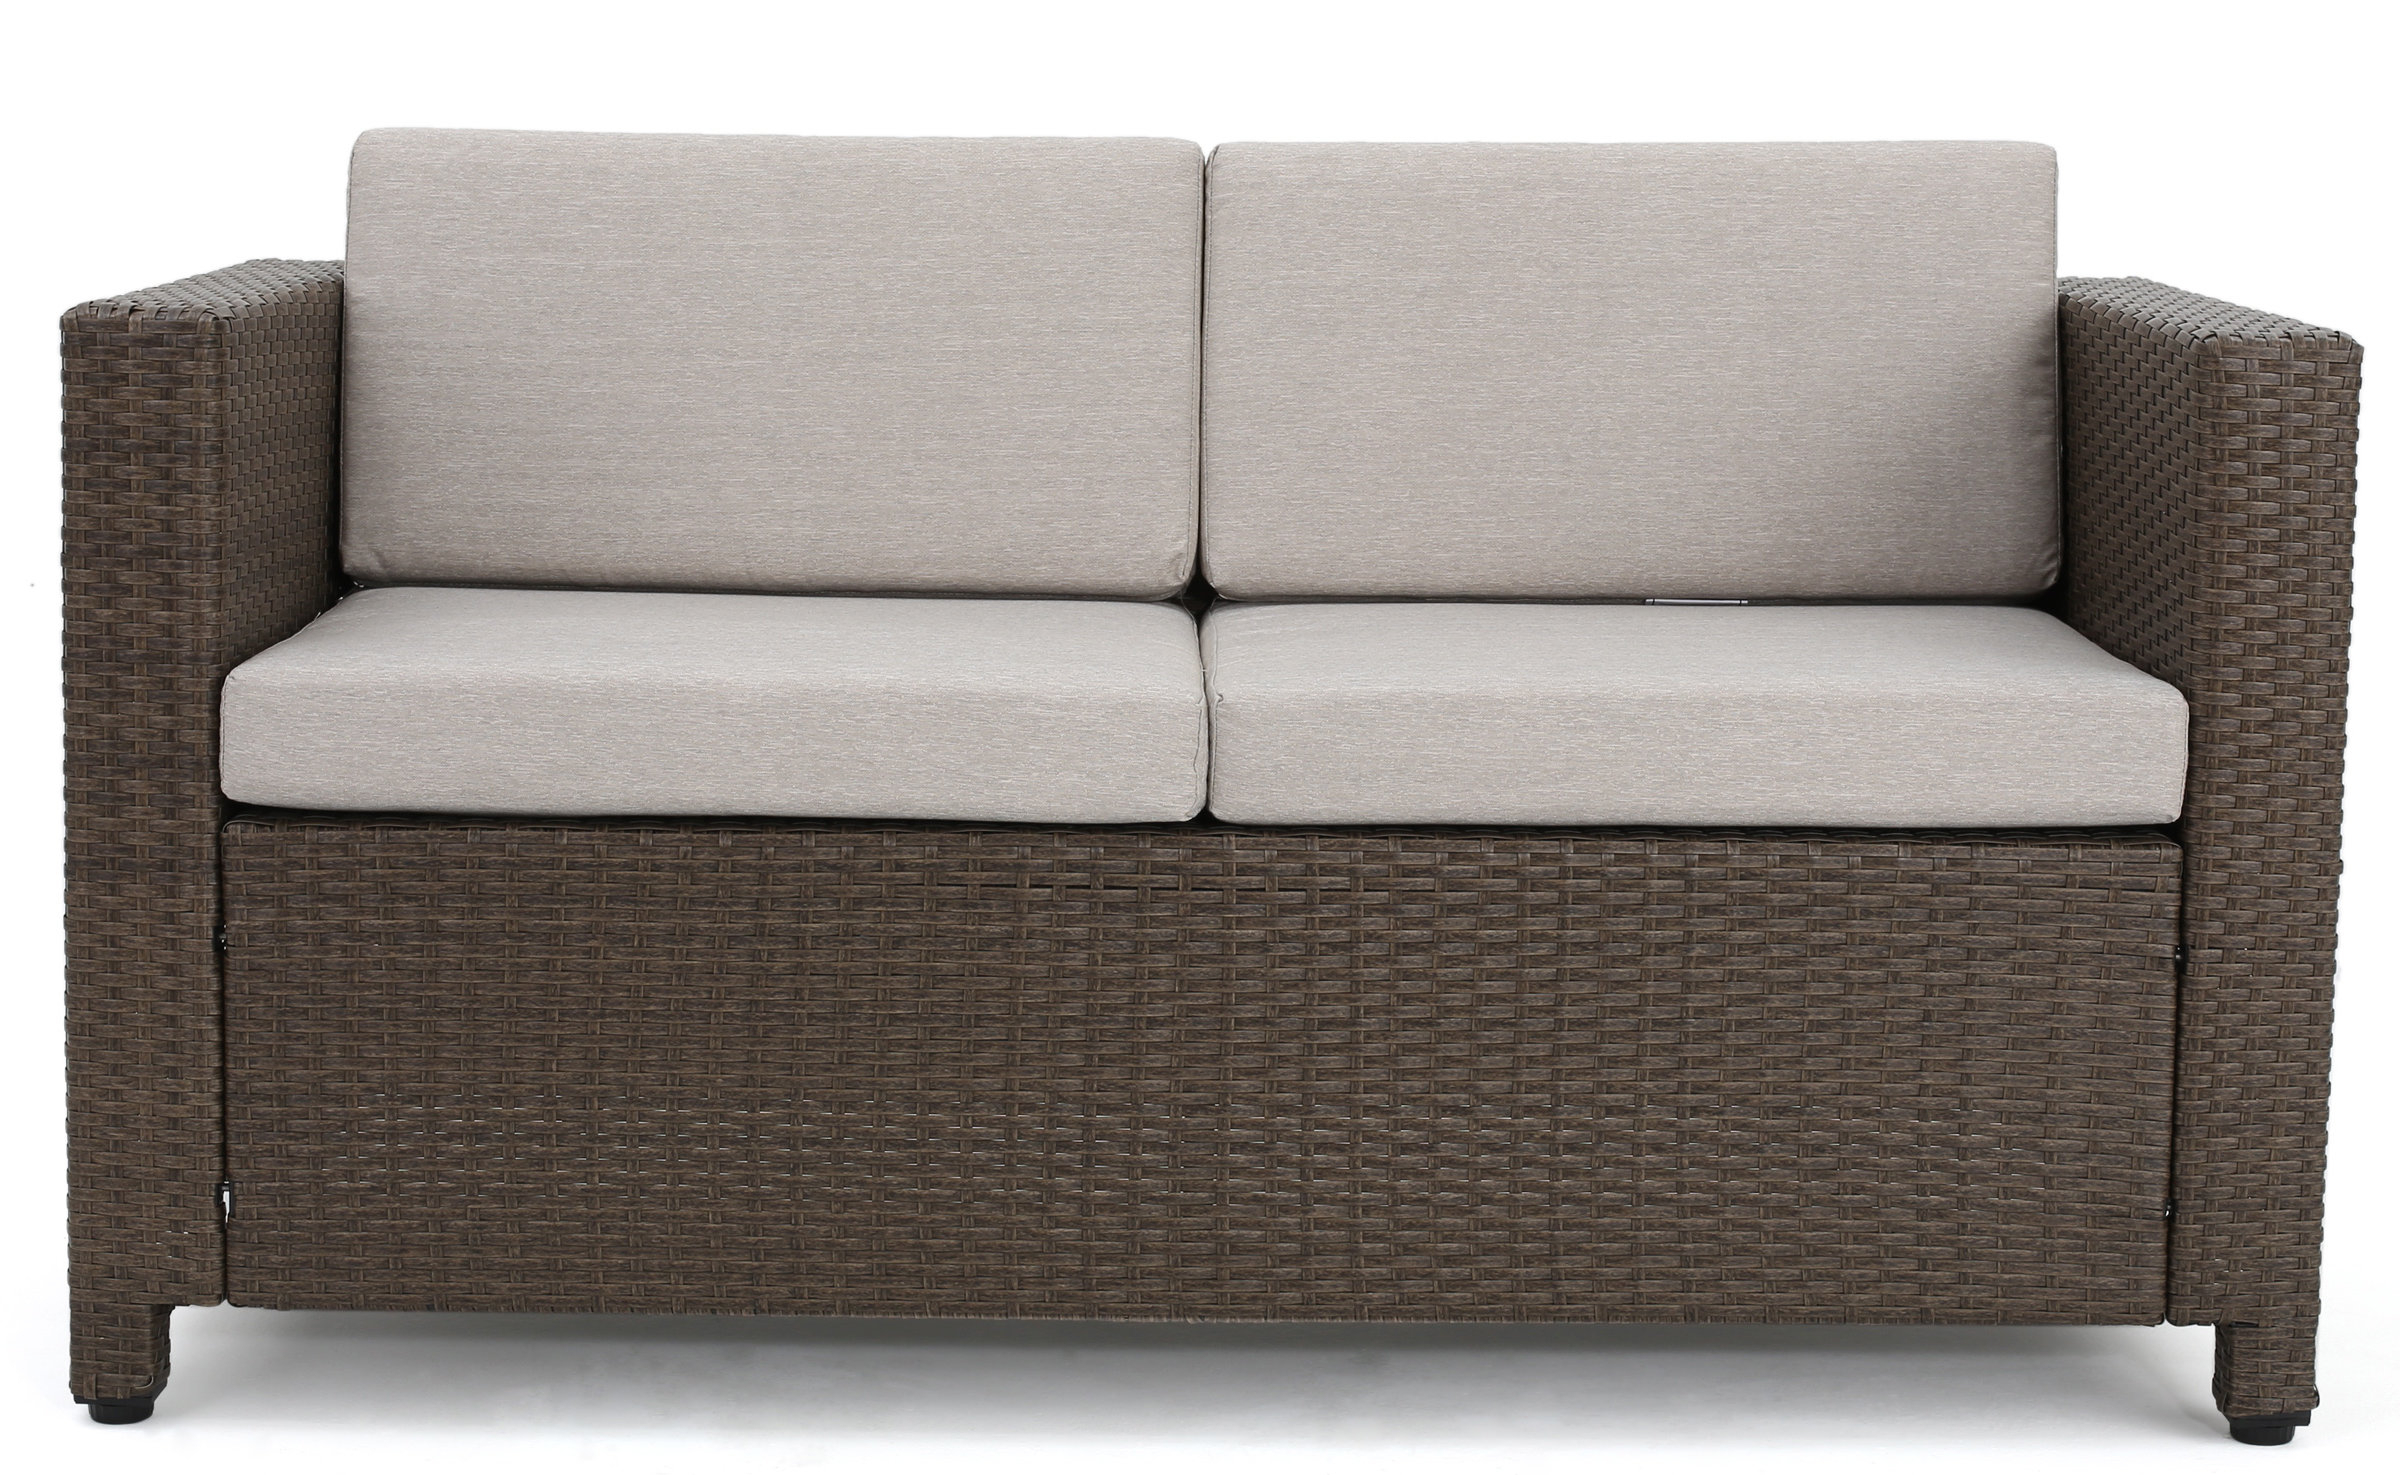 Furst Patio Sofas With Cushion In Fashionable Furst Outdoor Loveseat With Cushions (View 6 of 20)